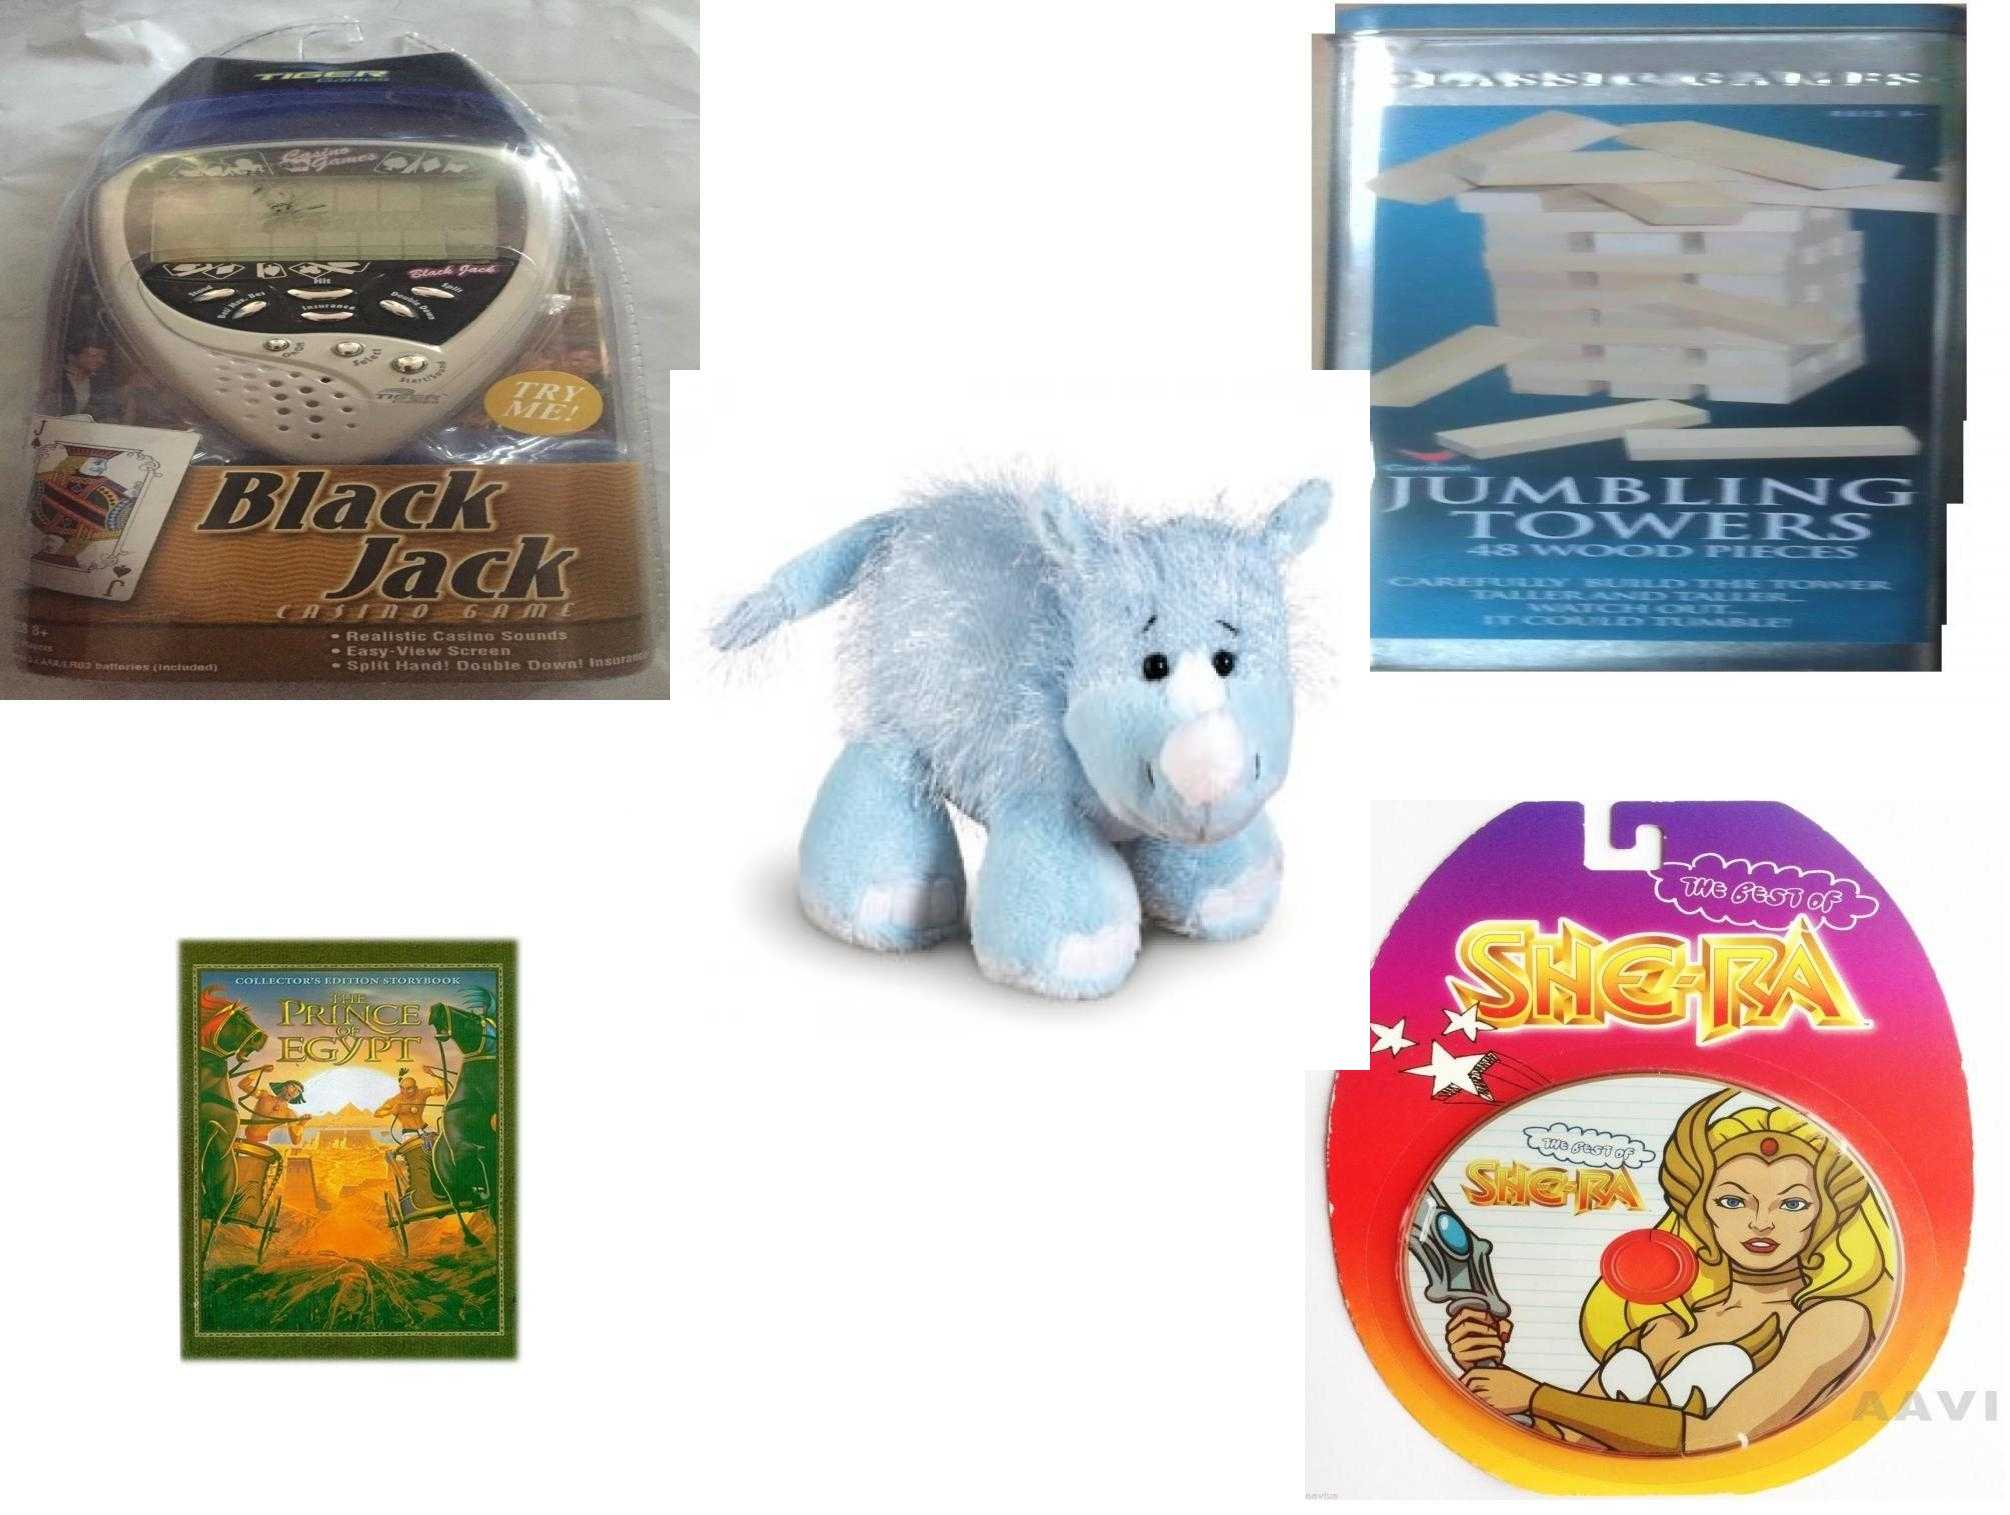 Children's Gift Bundle [5 Piece] - Black Jack Casino Handheld - Solid Wood  Jumbling Tower In A Tin - Webkinz Rhino - The Prince of Egypt - The Best of